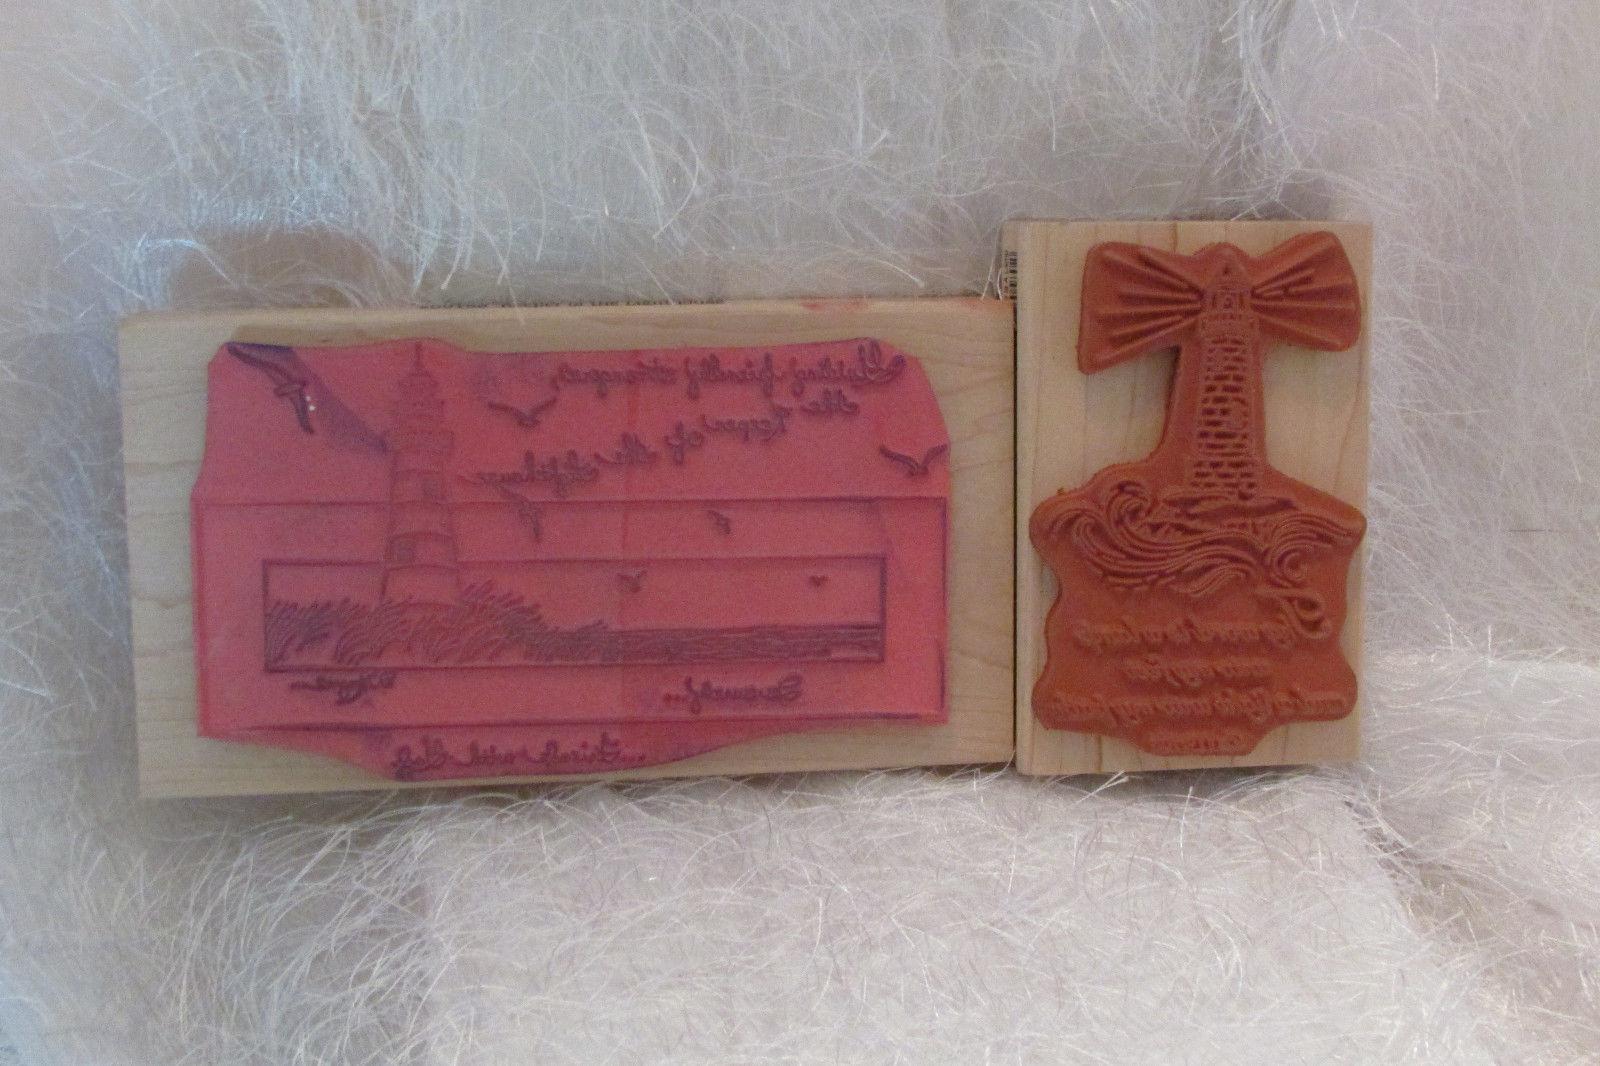 rubber stamps STAMPS HAPPEN, INC 2, The word is a lamp, Keeper of the lighthouse